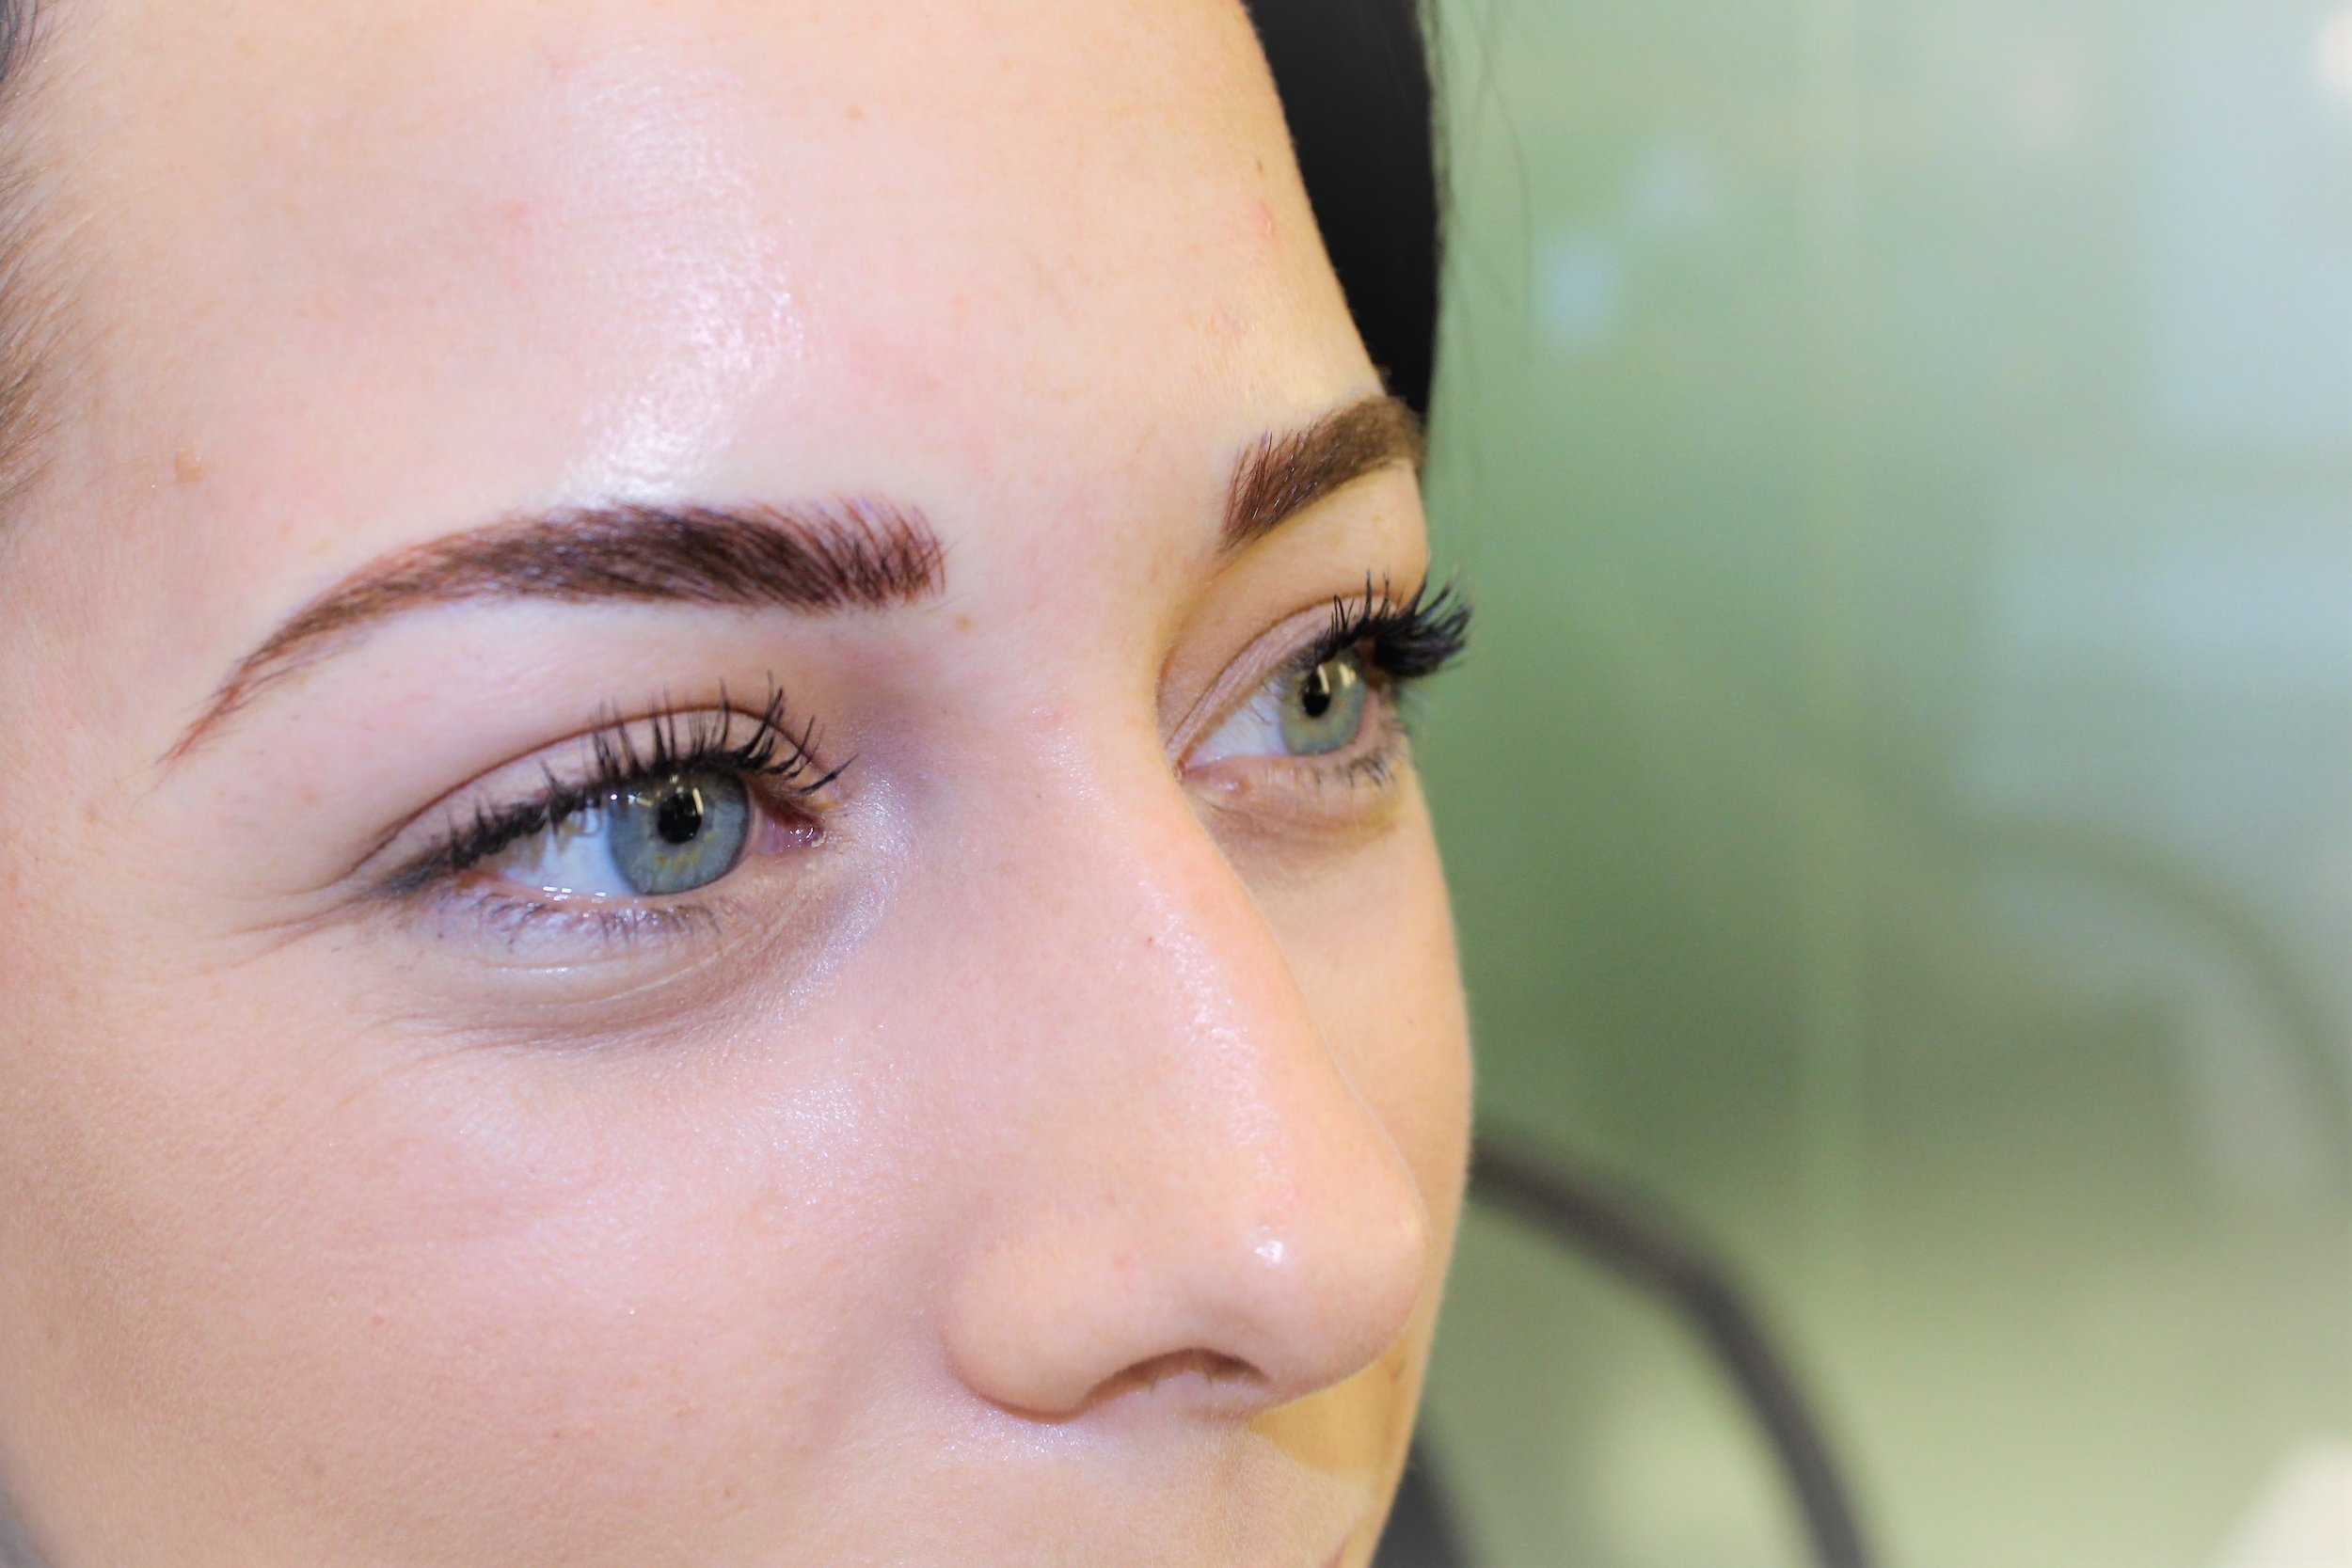 After microblading!